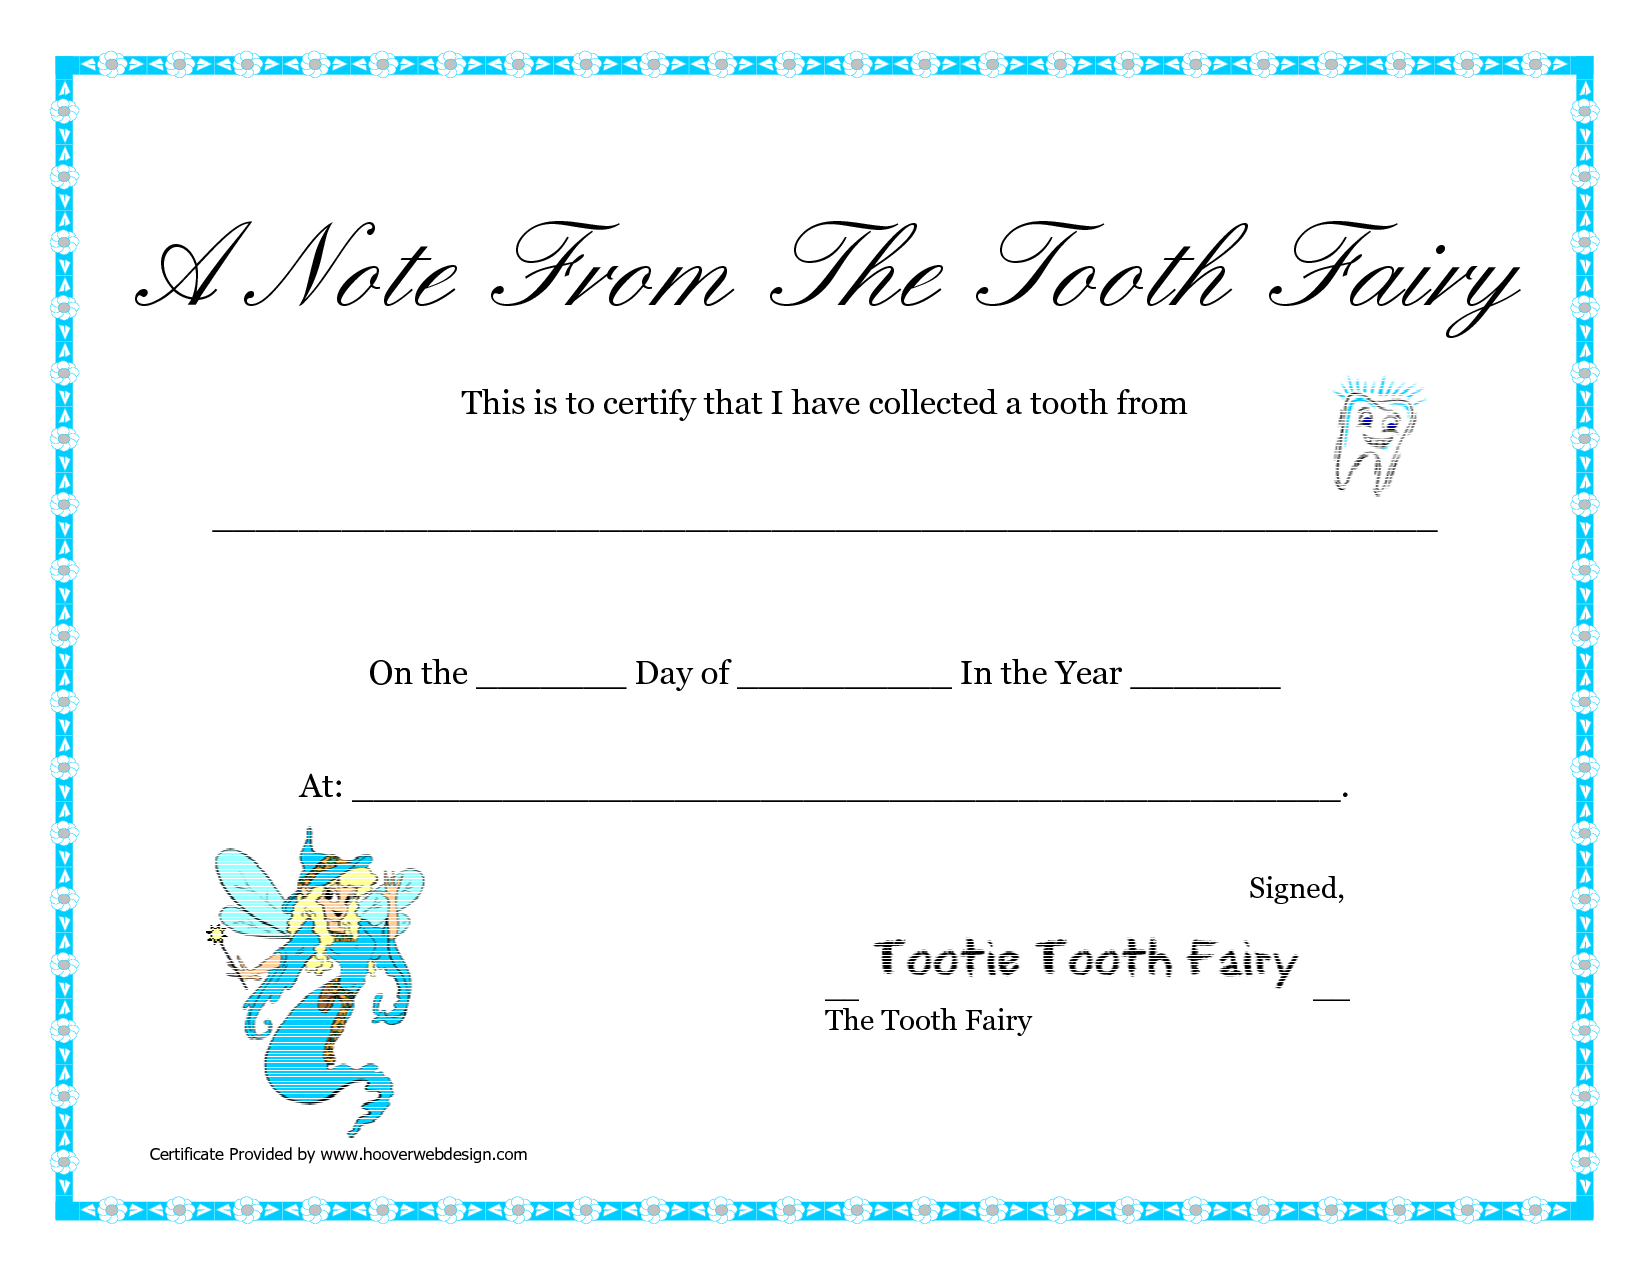 Clipart tooth fairy certificate clipground 17 best images about tooth fairy on pinterest free printable tooth fairy letter spiritdancerdesigns Choice Image